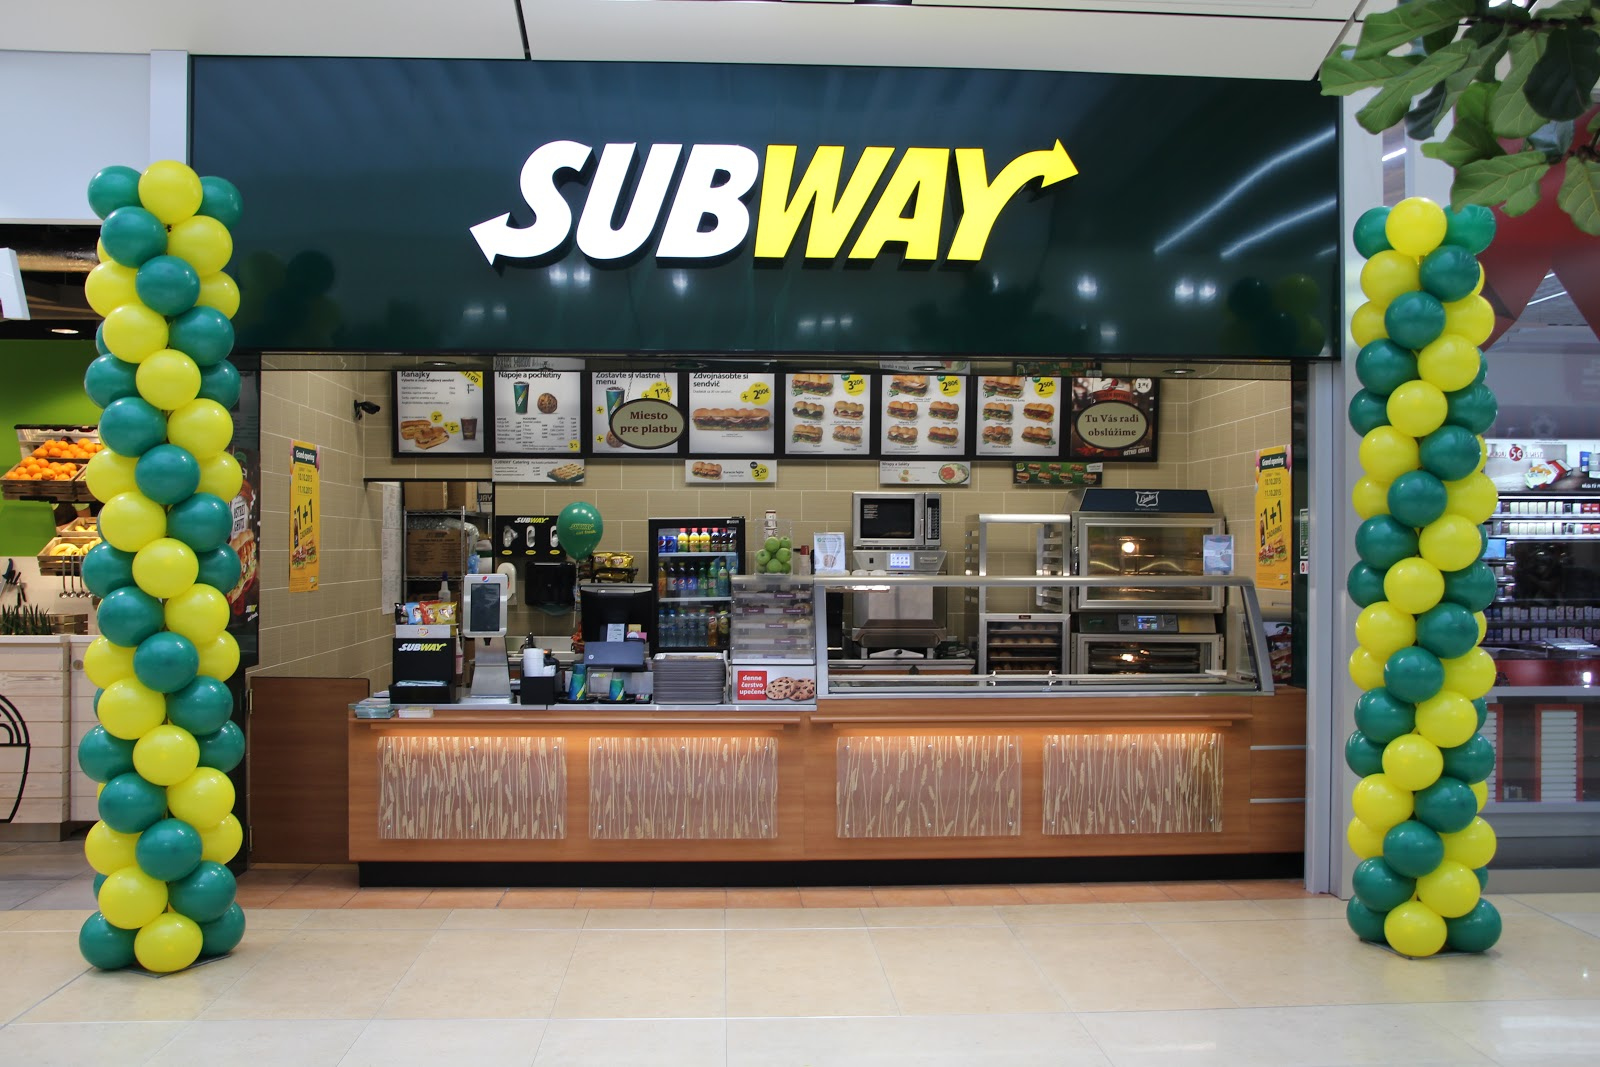 Subway used the franchise model to become the most prolific restaurant brand in the world.